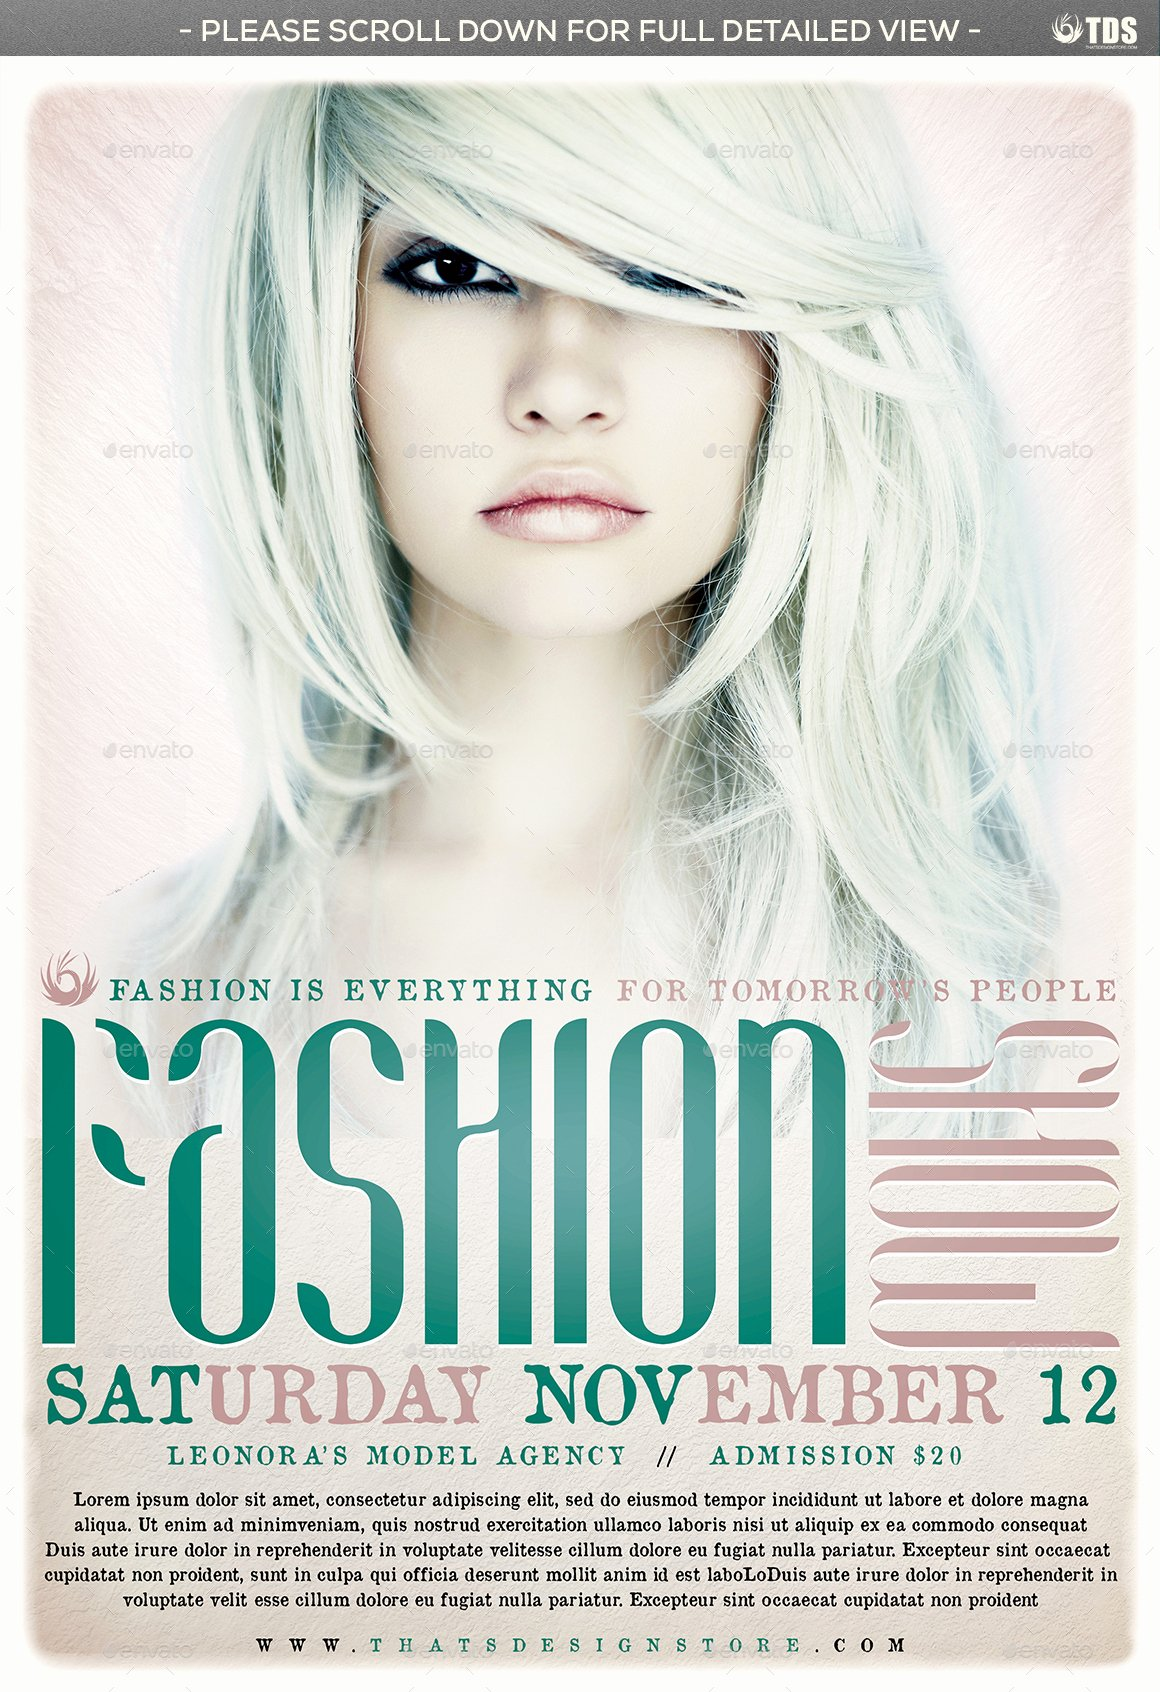 Fashion Show Flyer Template Unique Fashion Show Flyer Template V2 by Lou606